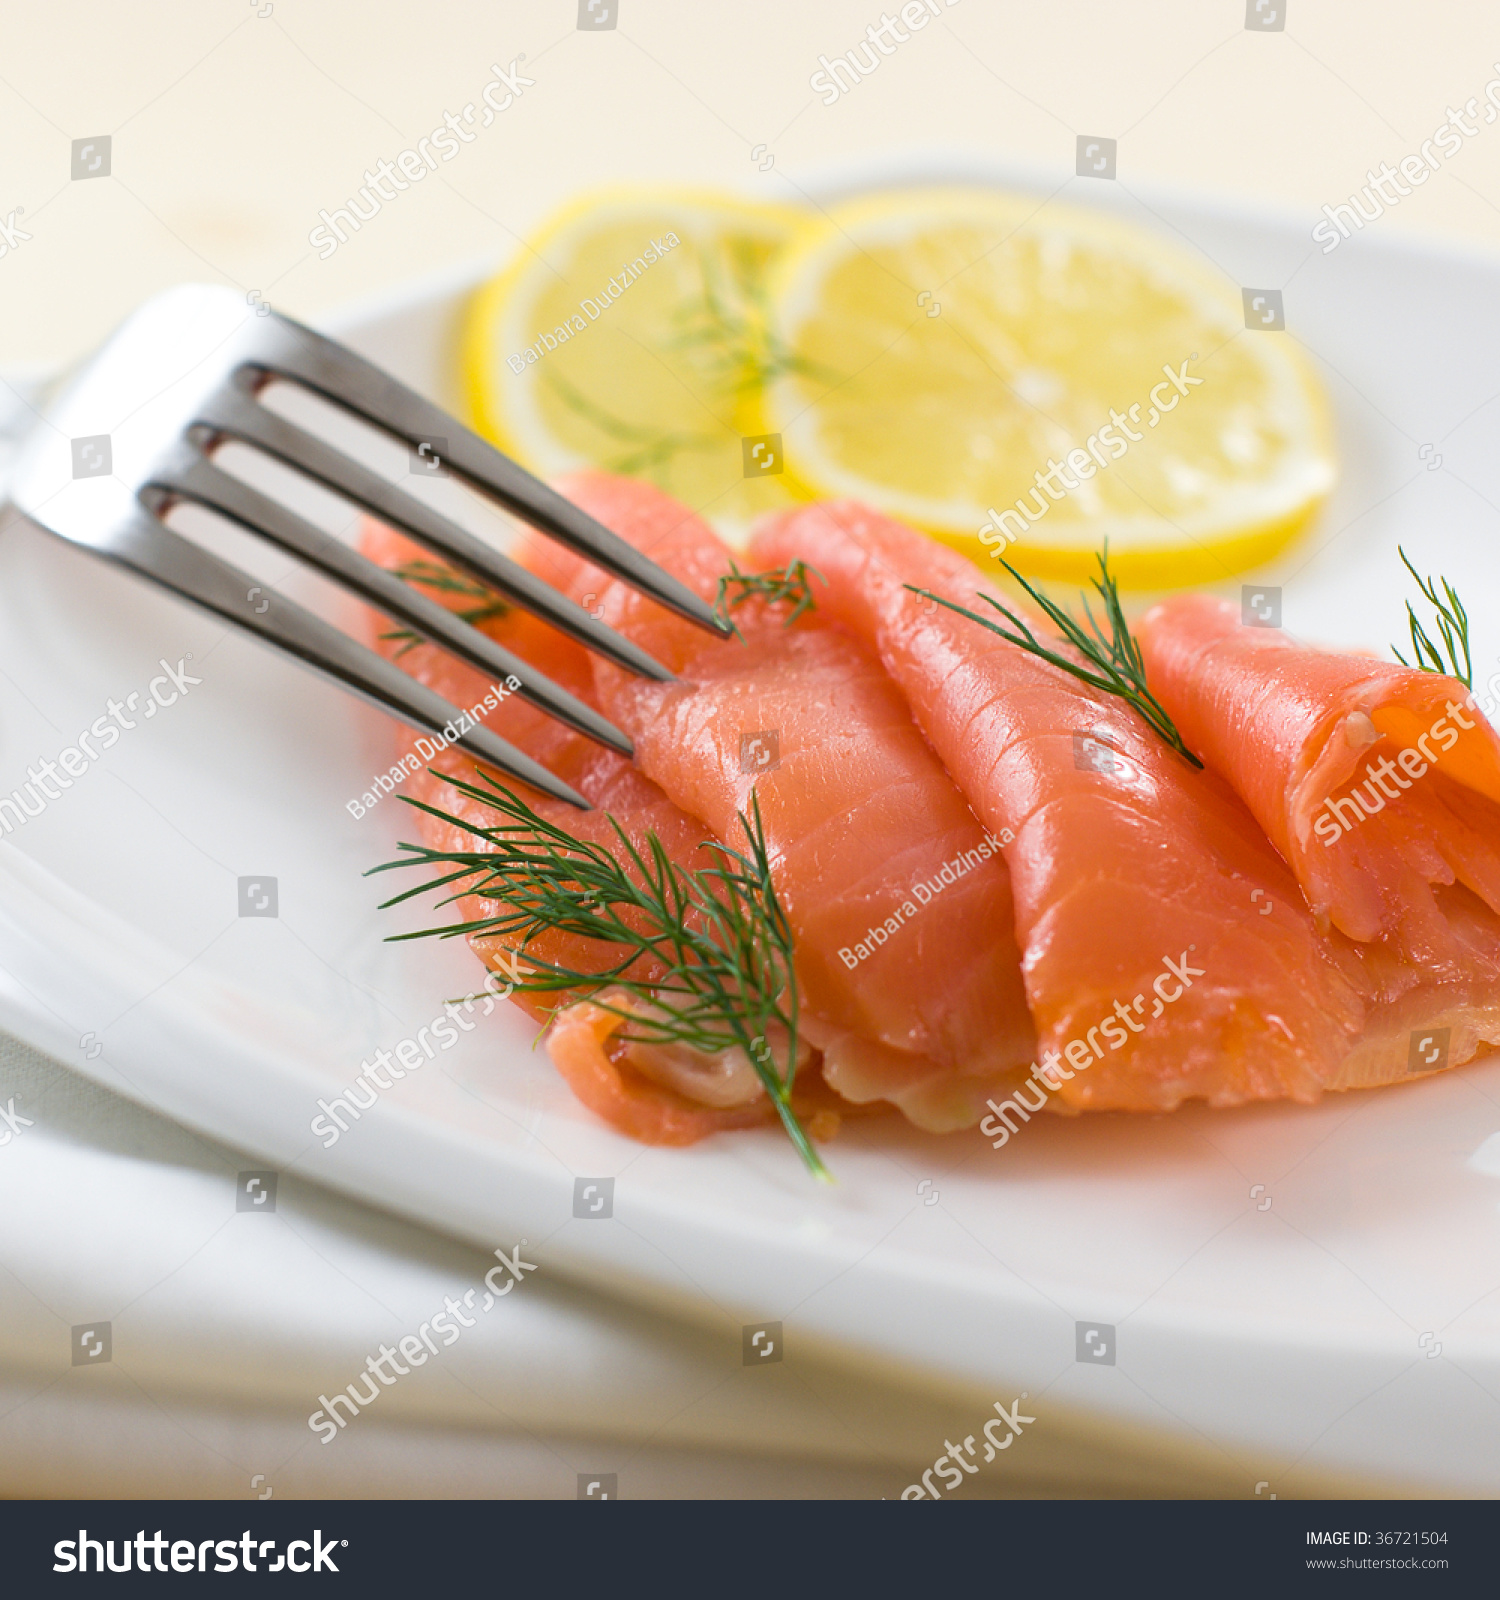 Smoked Salmon With Dill And Lemon Stock Photo 36721504 : Shutterstock